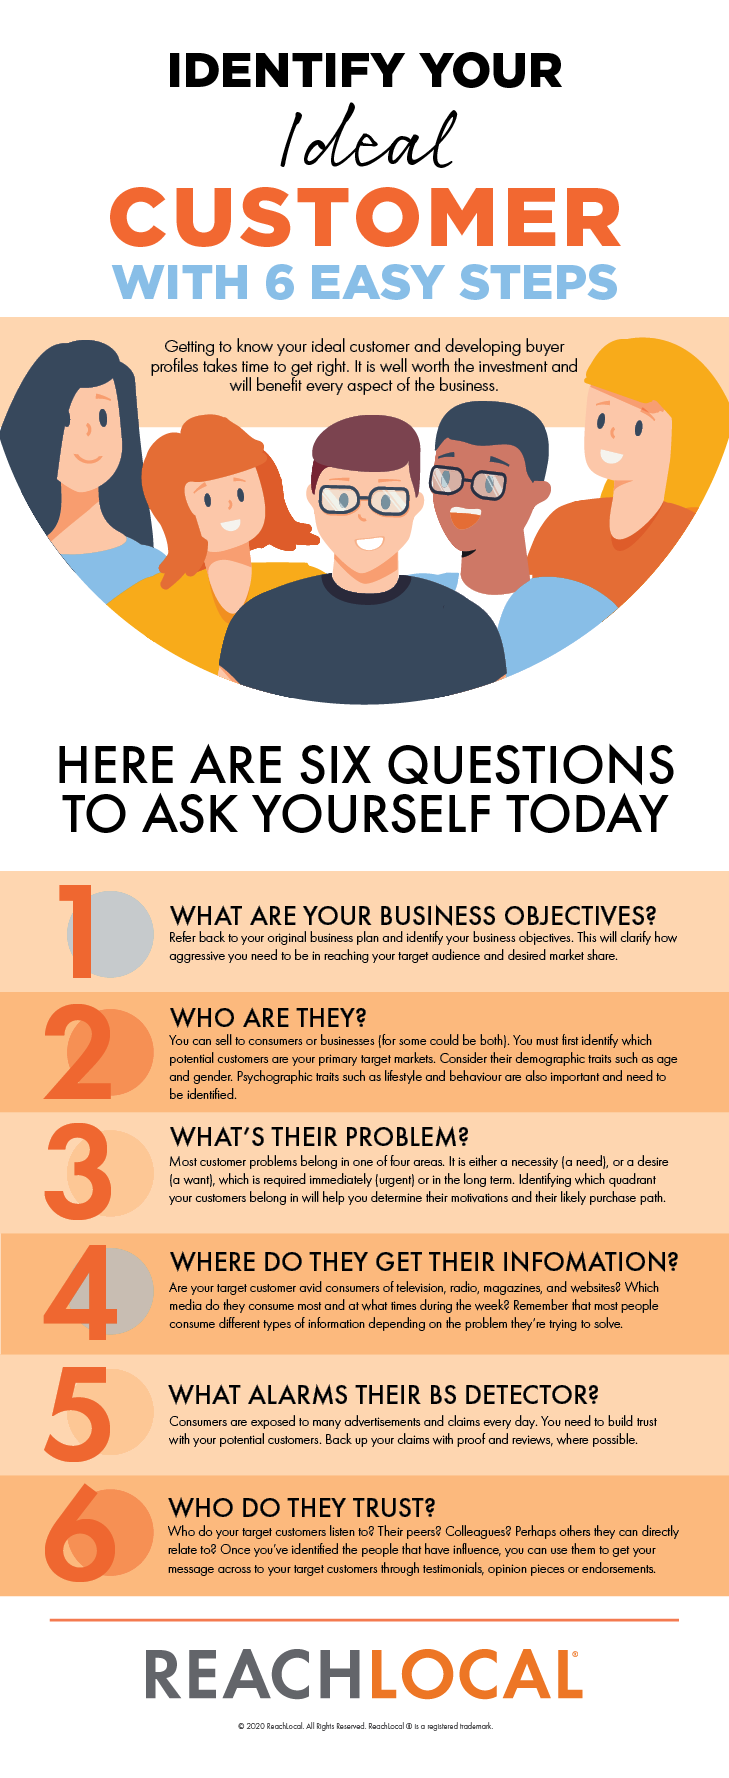 Identify Your Ideal Customer With 6 Easy Steps